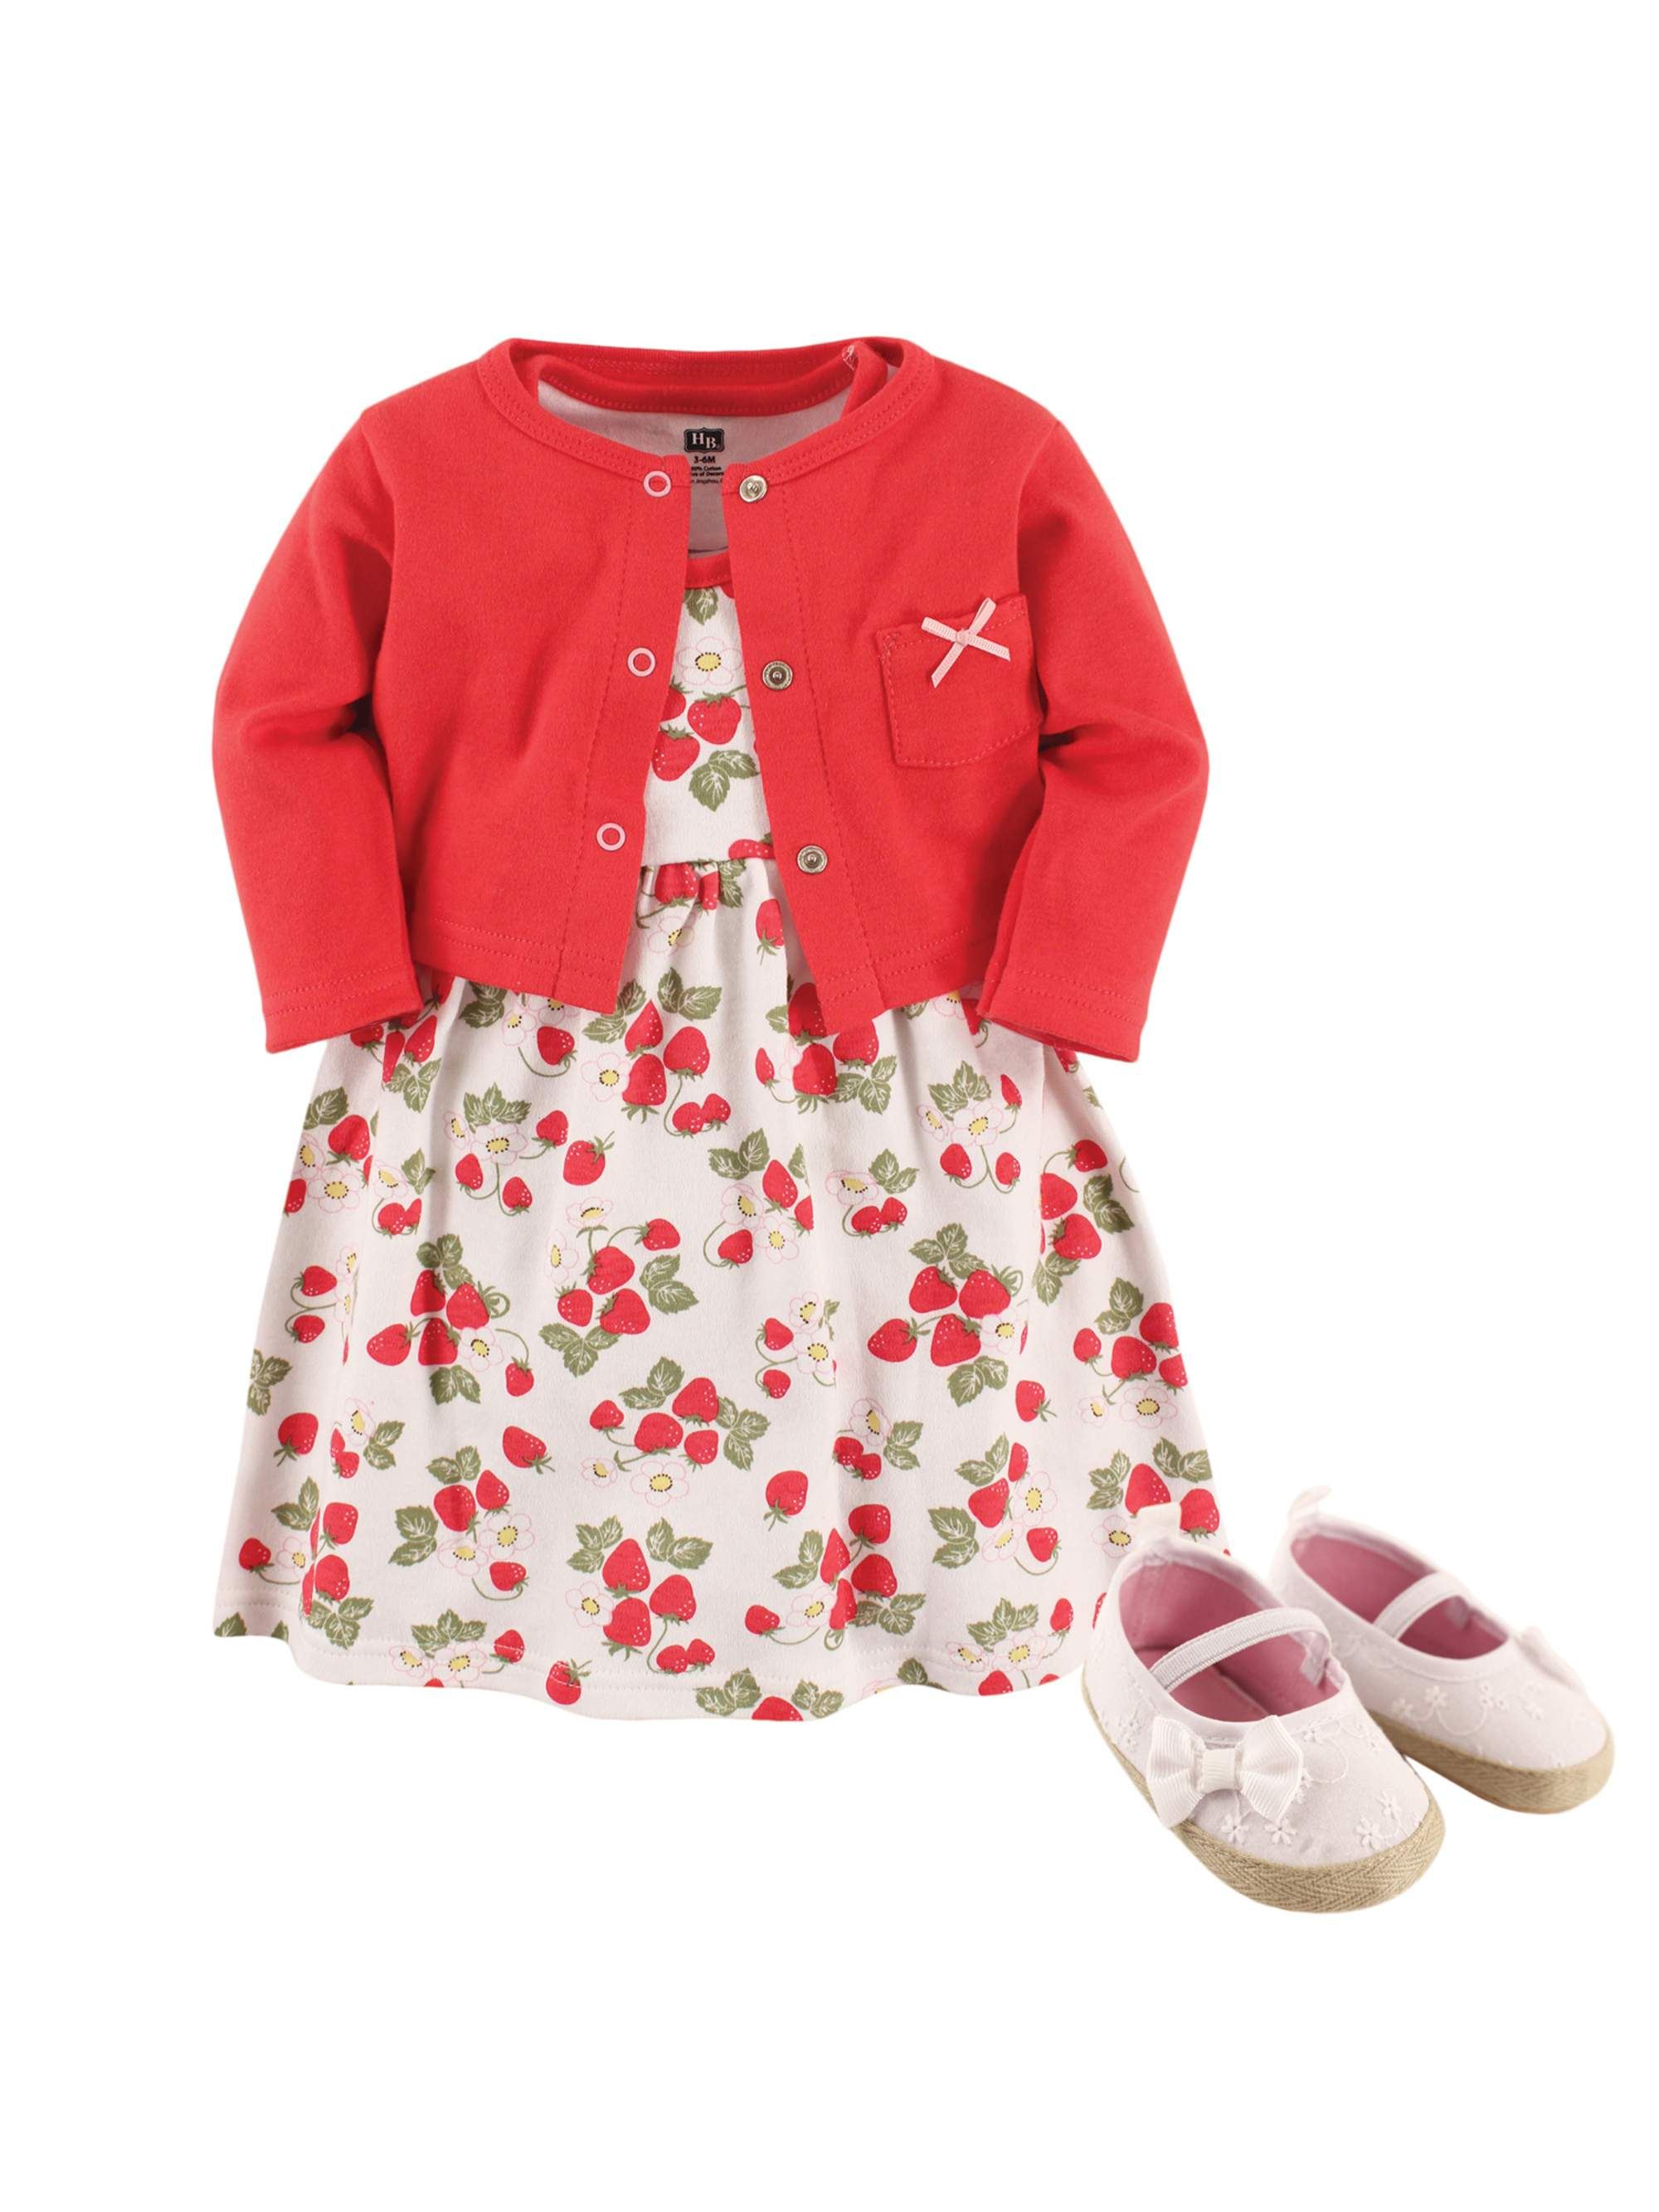 Girl Cardigan, Dress & Shoes, 3pc Outfit Set